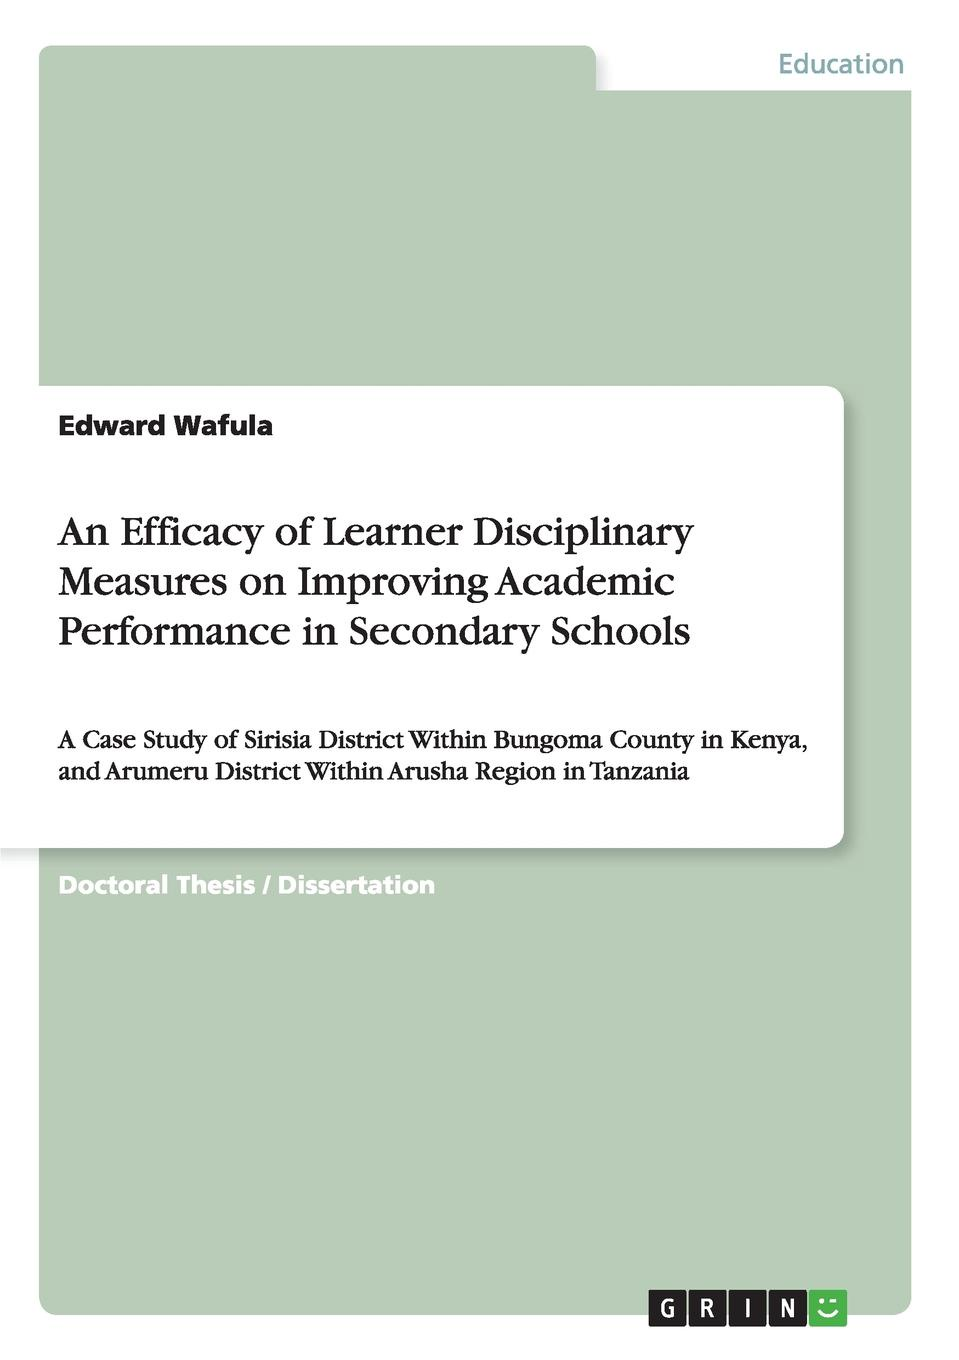 Edward Wafula An Efficacy of Learner Disciplinary Measures on Improving Academic Performance in Secondary Schools study attitude and academic performance